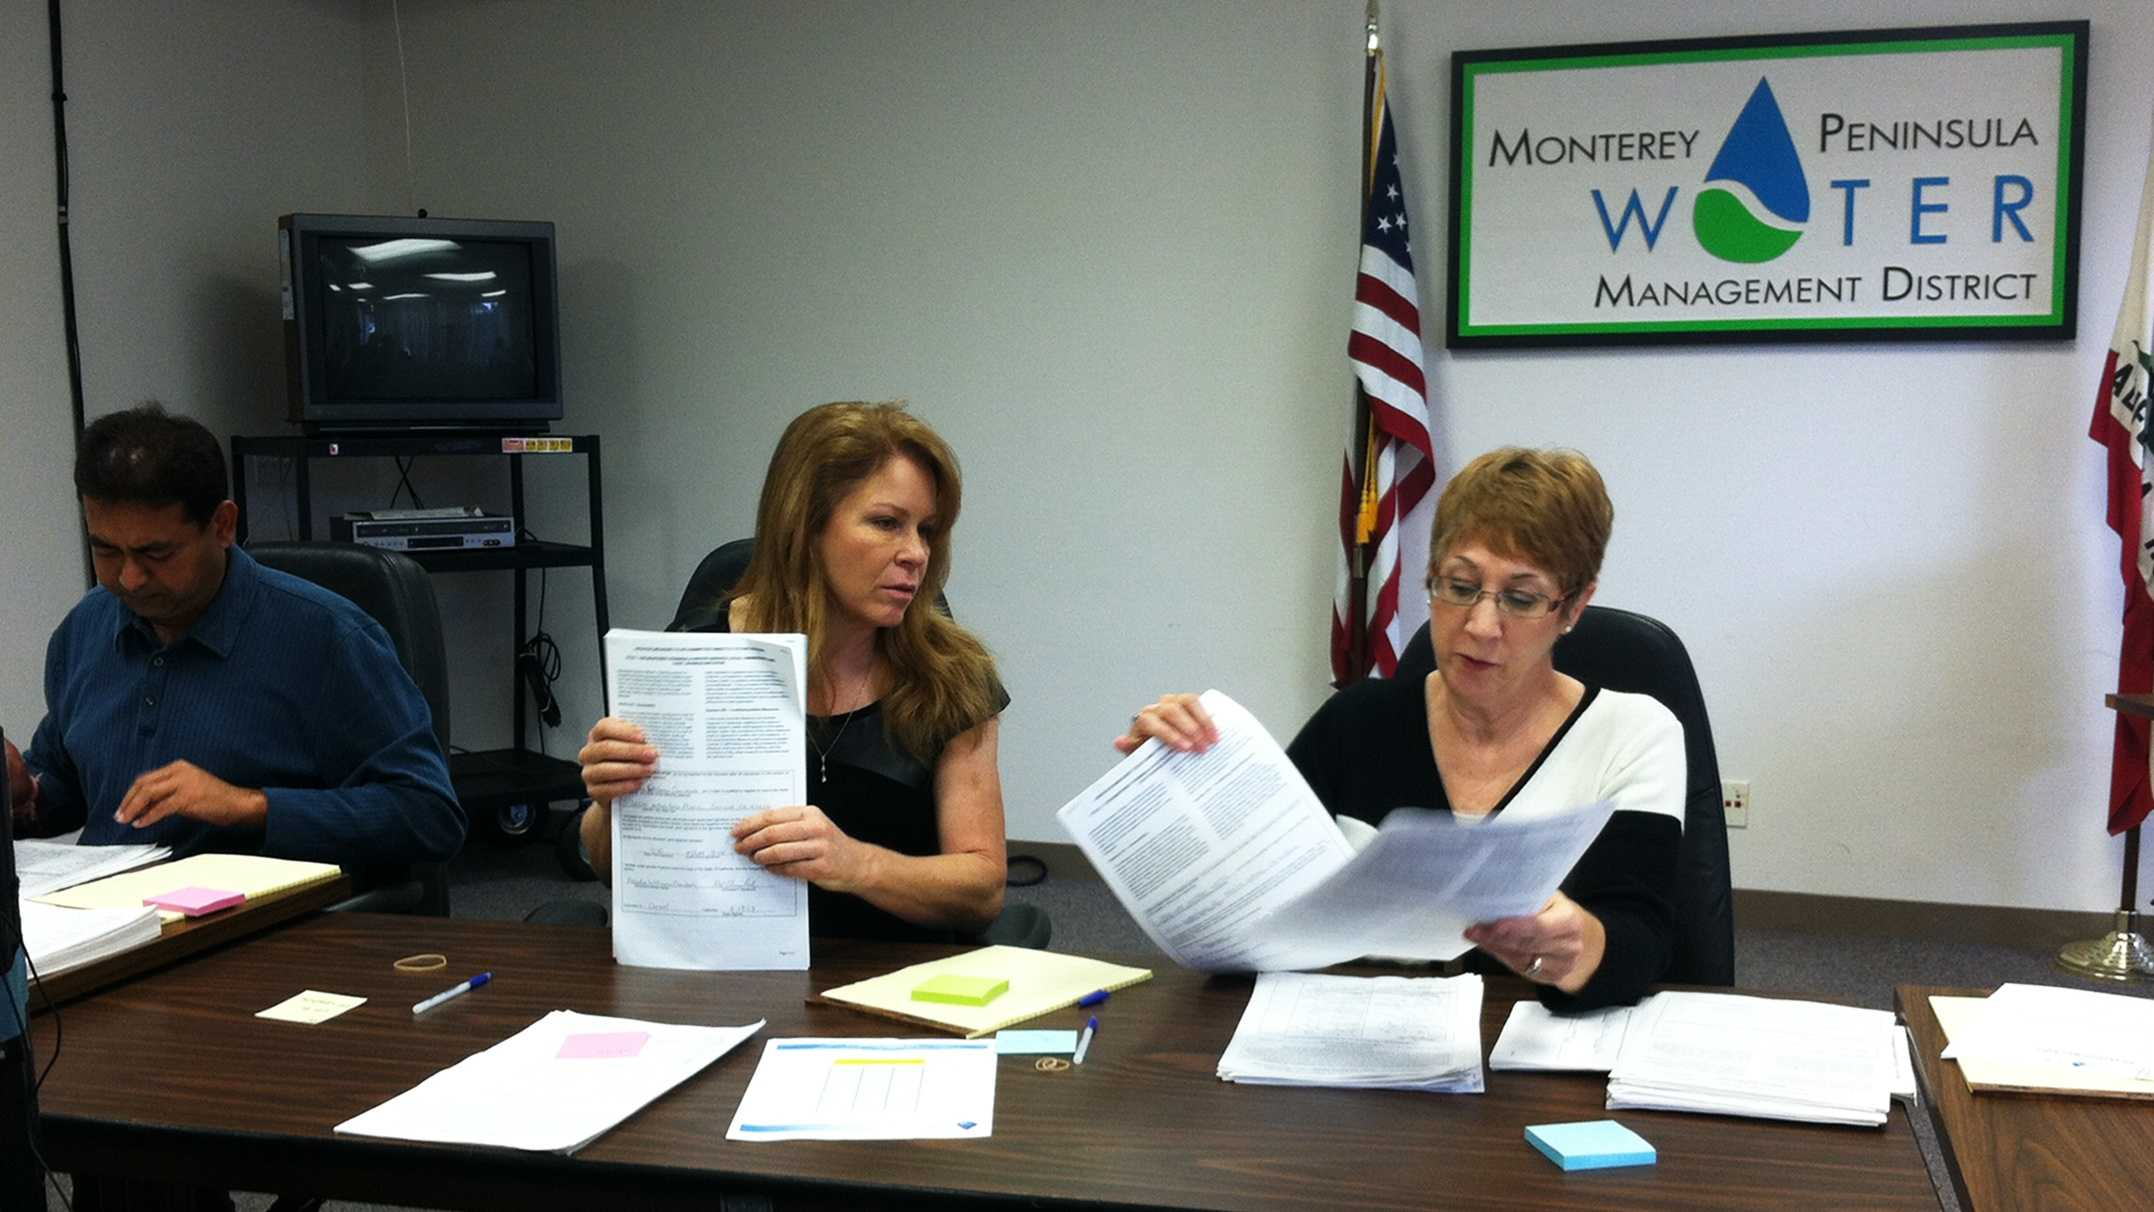 The Monterey Peninsula Water Management District collects signatures from Public Water Now.